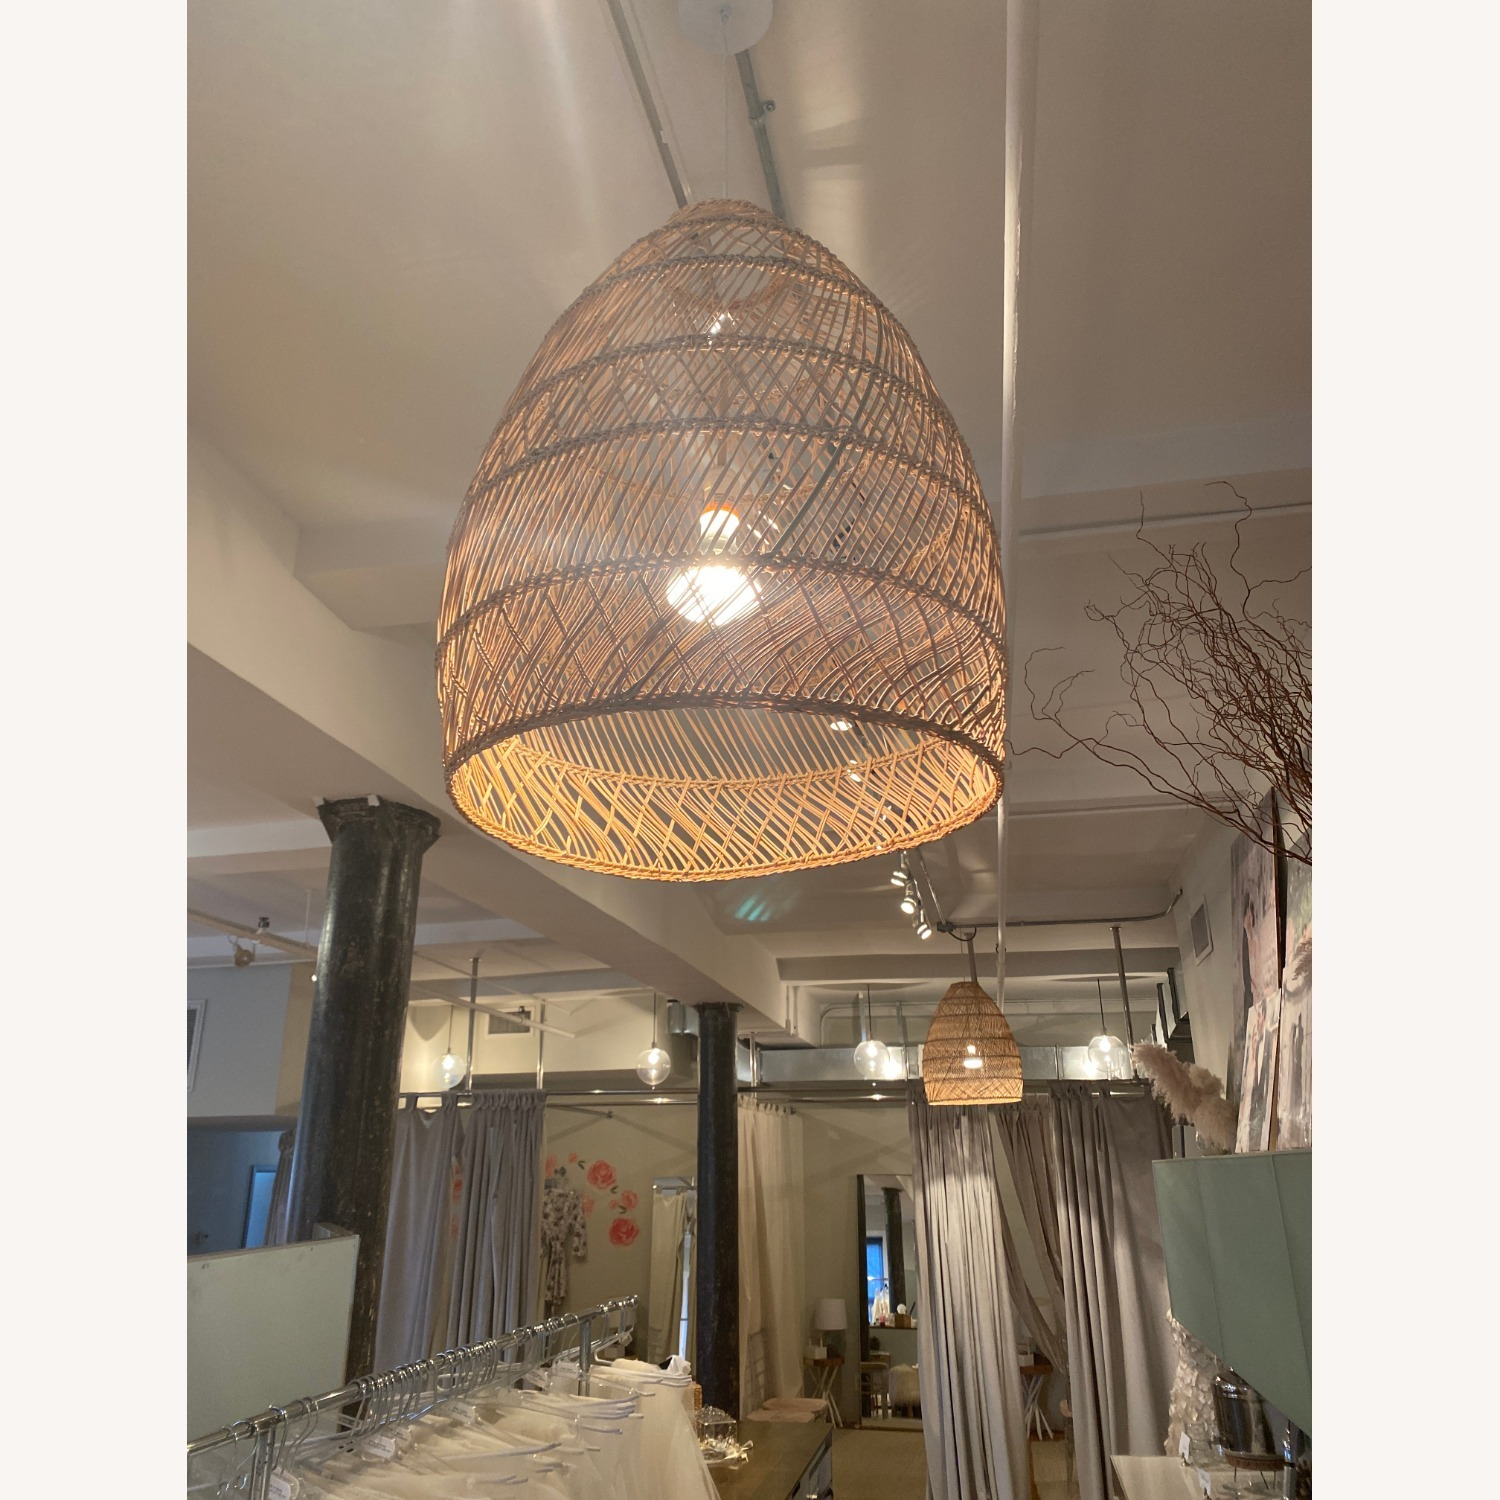 Serena and Lily Rattan Ceiling Light Pendants (2) - image-1